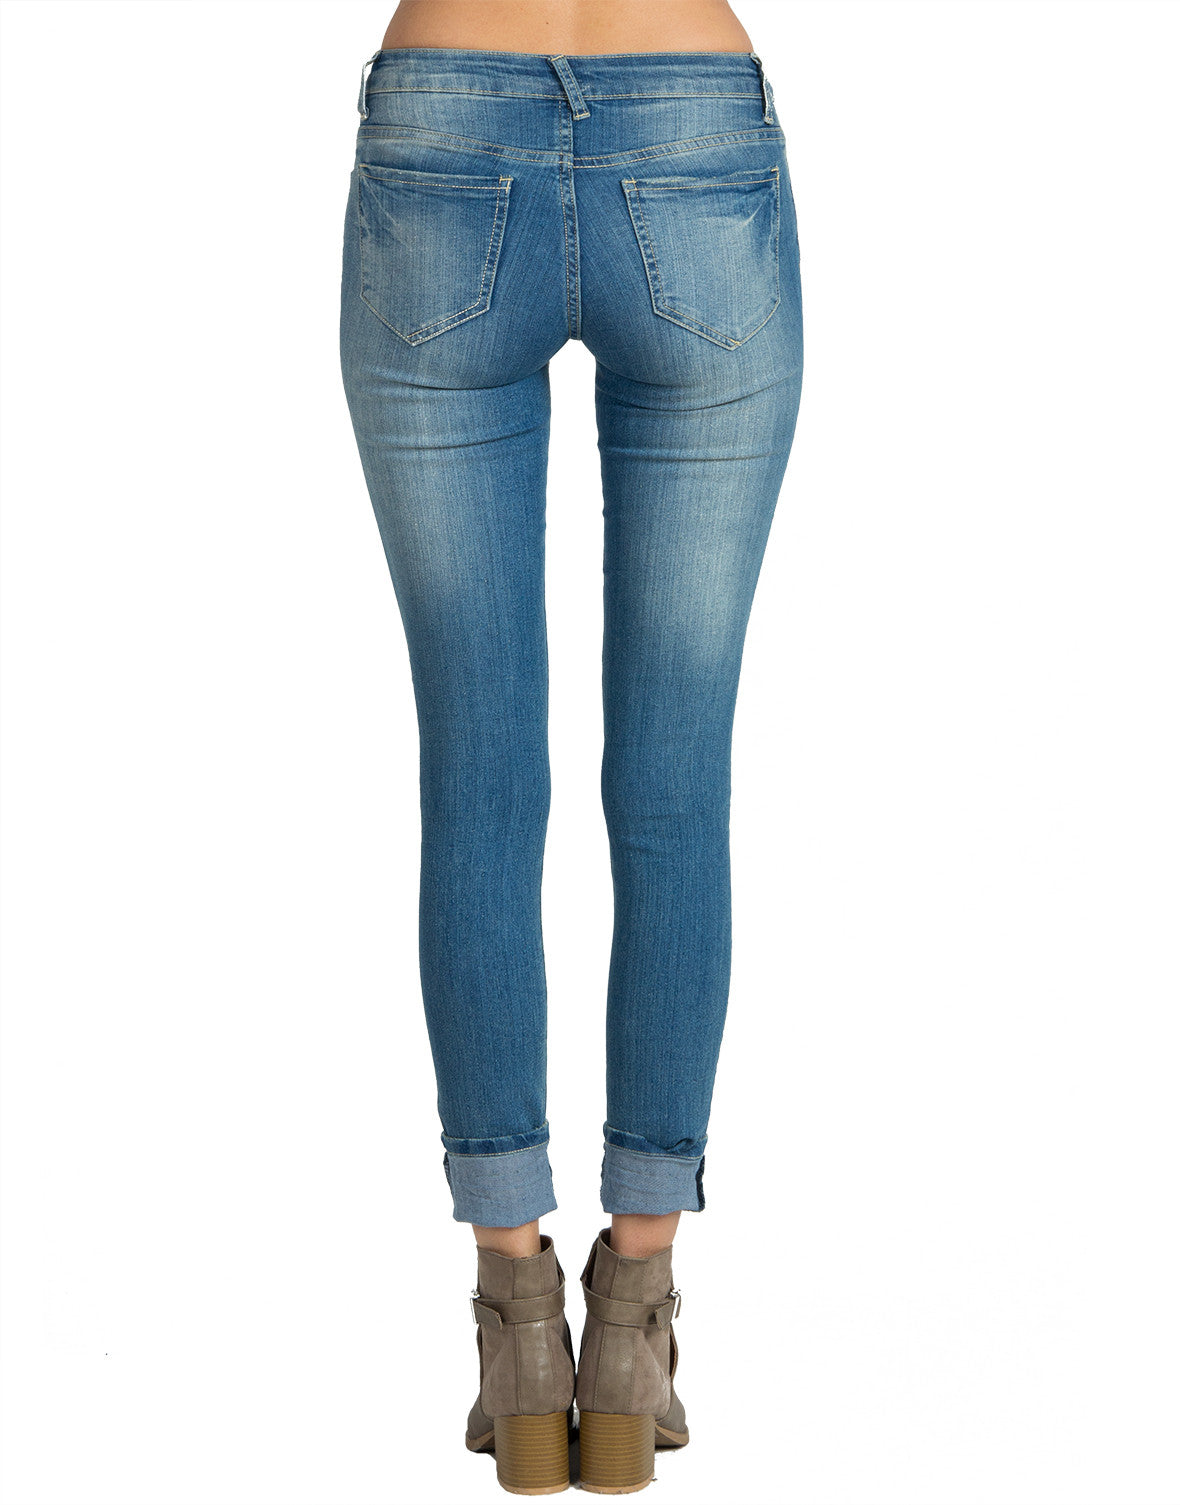 Faded Denim Skinny Jeans - 2020AVE